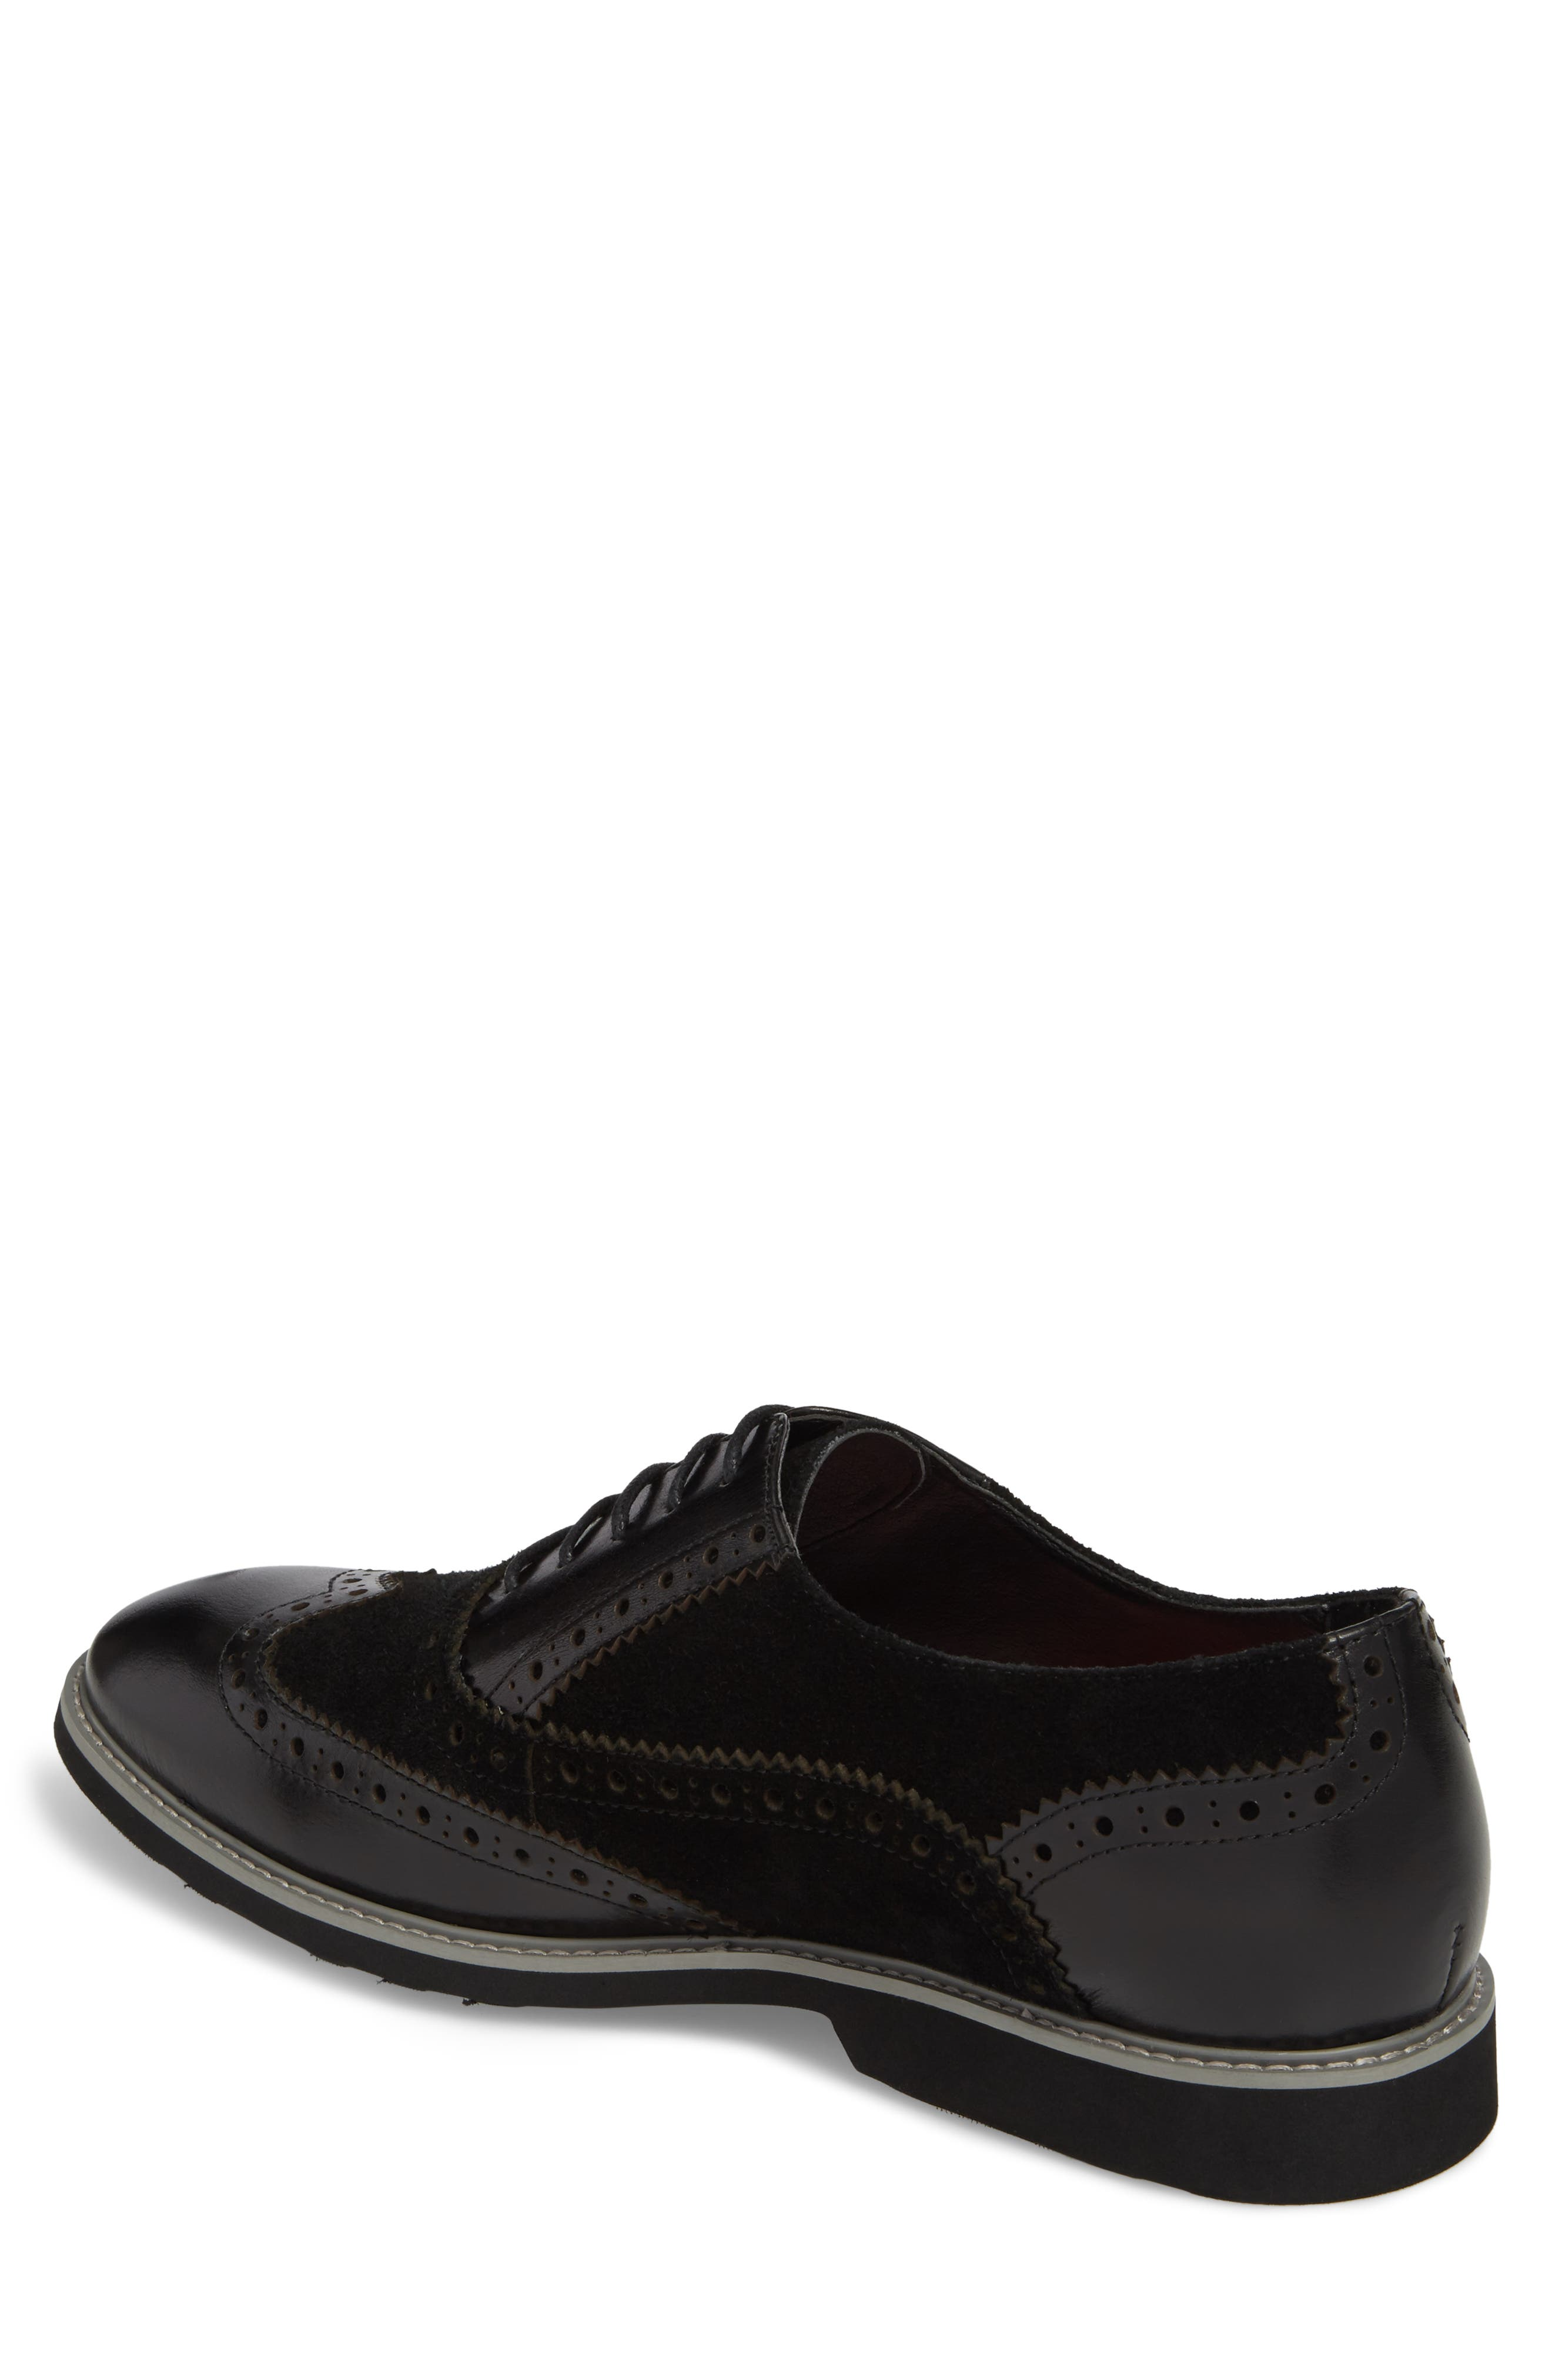 Chorley Wingtip Oxford,                             Alternate thumbnail 2, color,                             Black Leather/ Suede